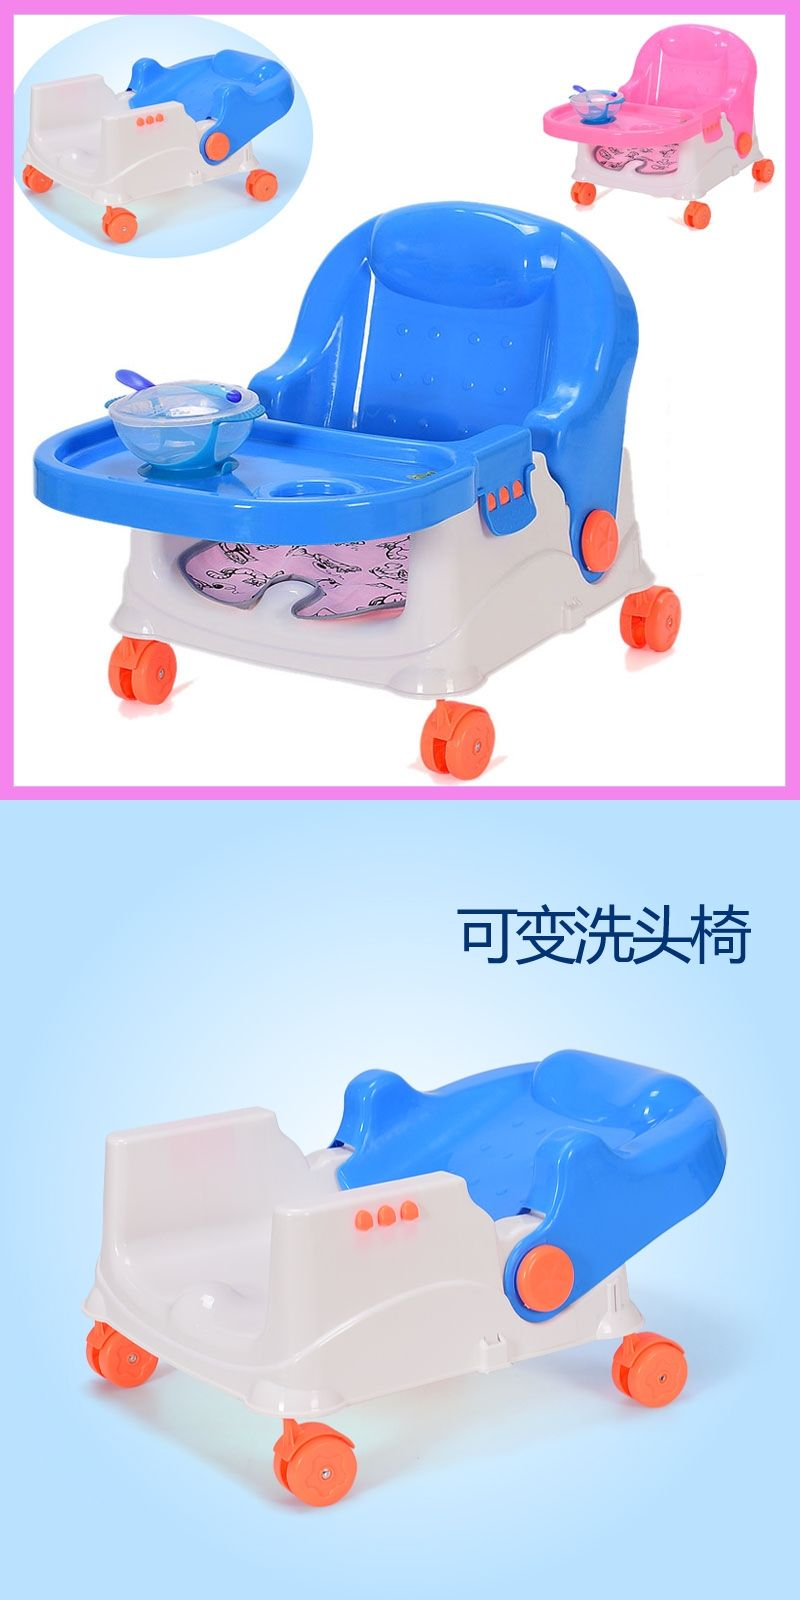 Portable Baby Safety Chair Washing Head Chair Child Eating Table ...